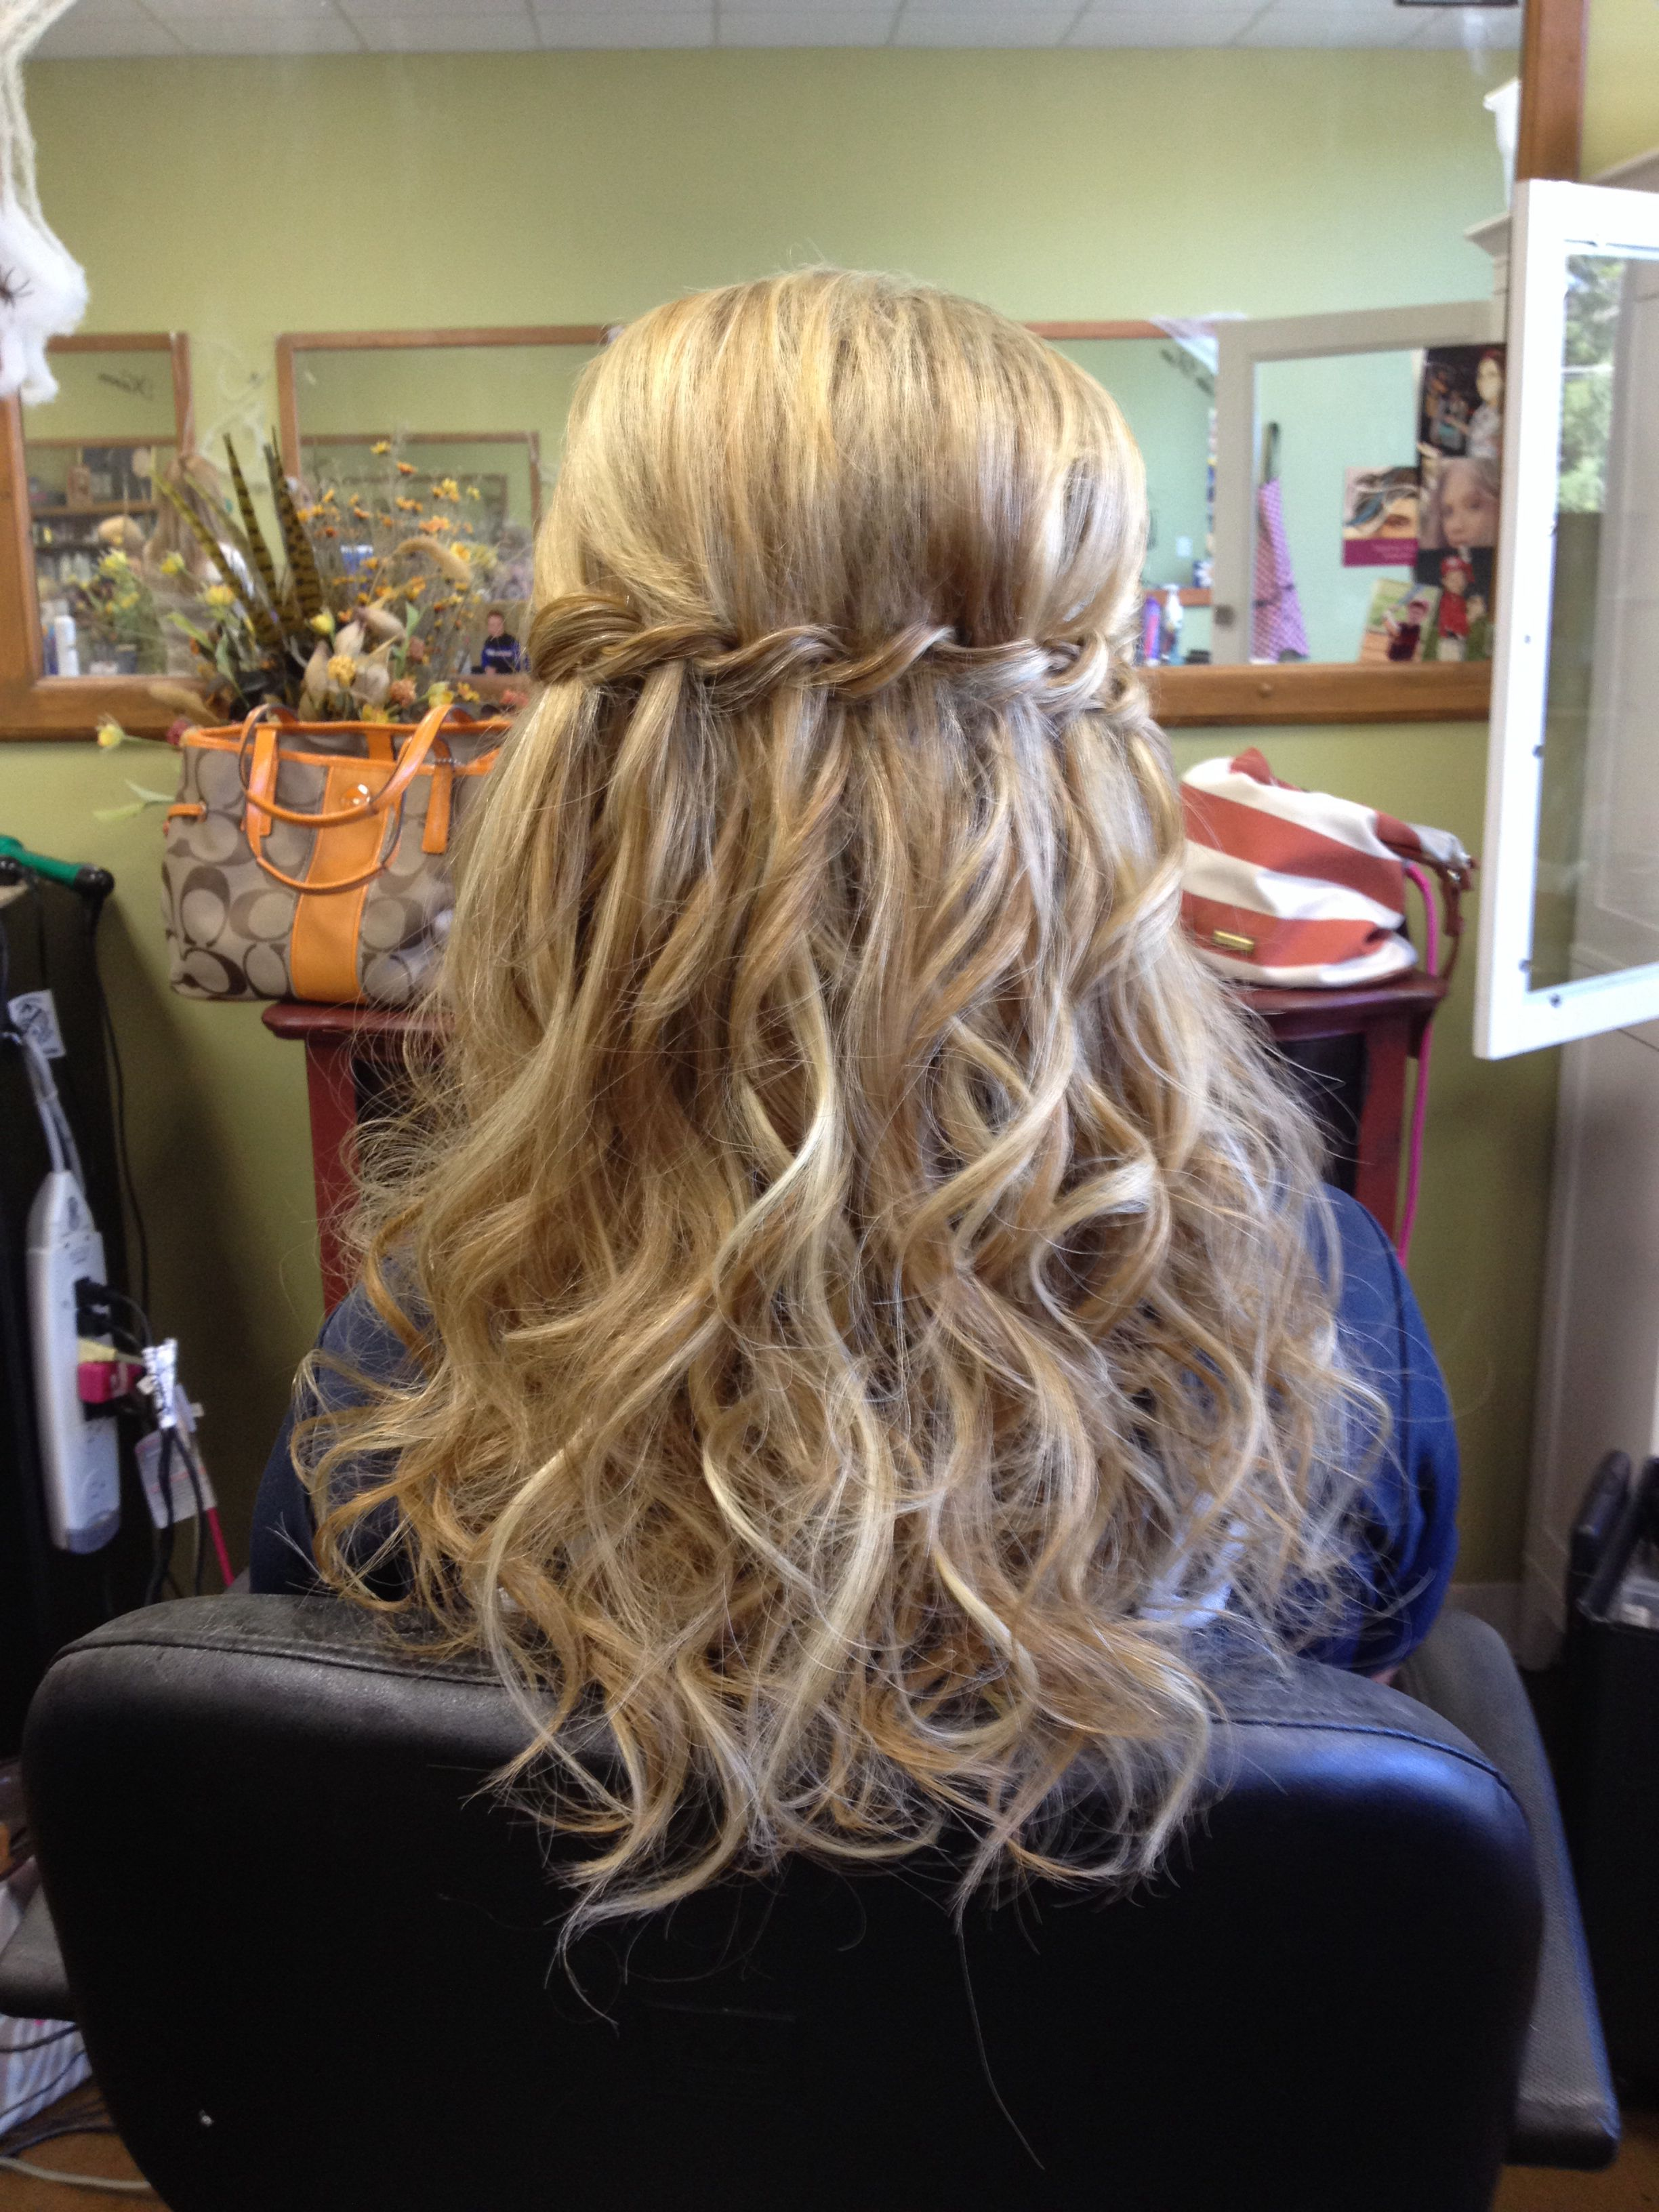 waterfall braid with extensions, curls, half up, bridal